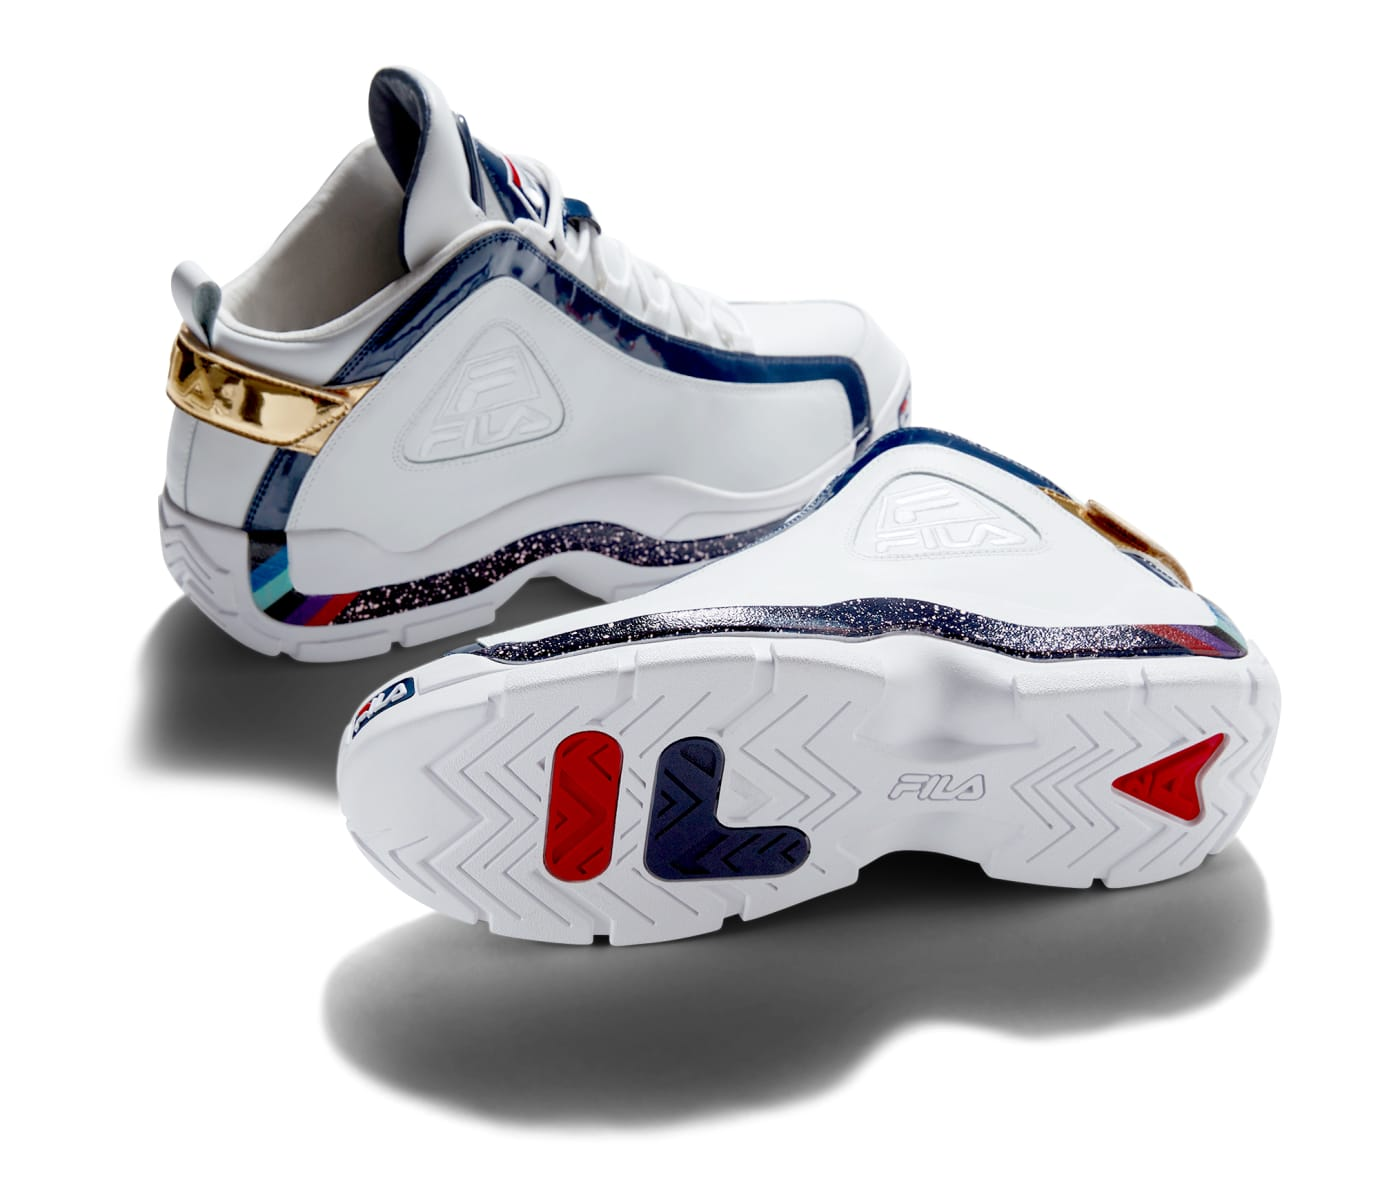 c249da963f9b Fila Grant Hill 2 Hall of Fame  White  (Lateral and Sole)